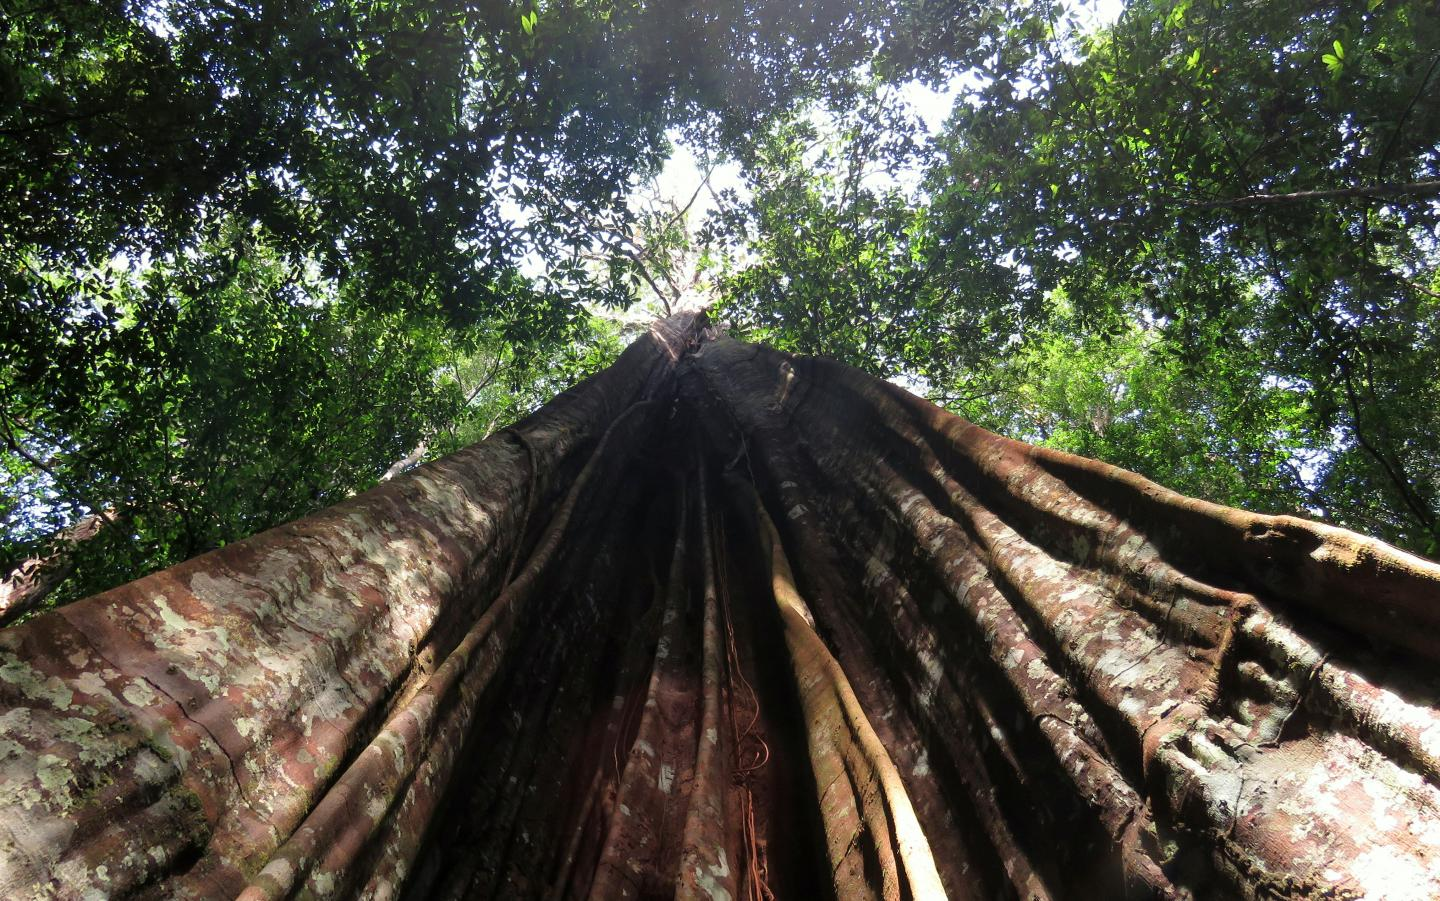 Drought in the Amazon Affects Larger Trees More Severely